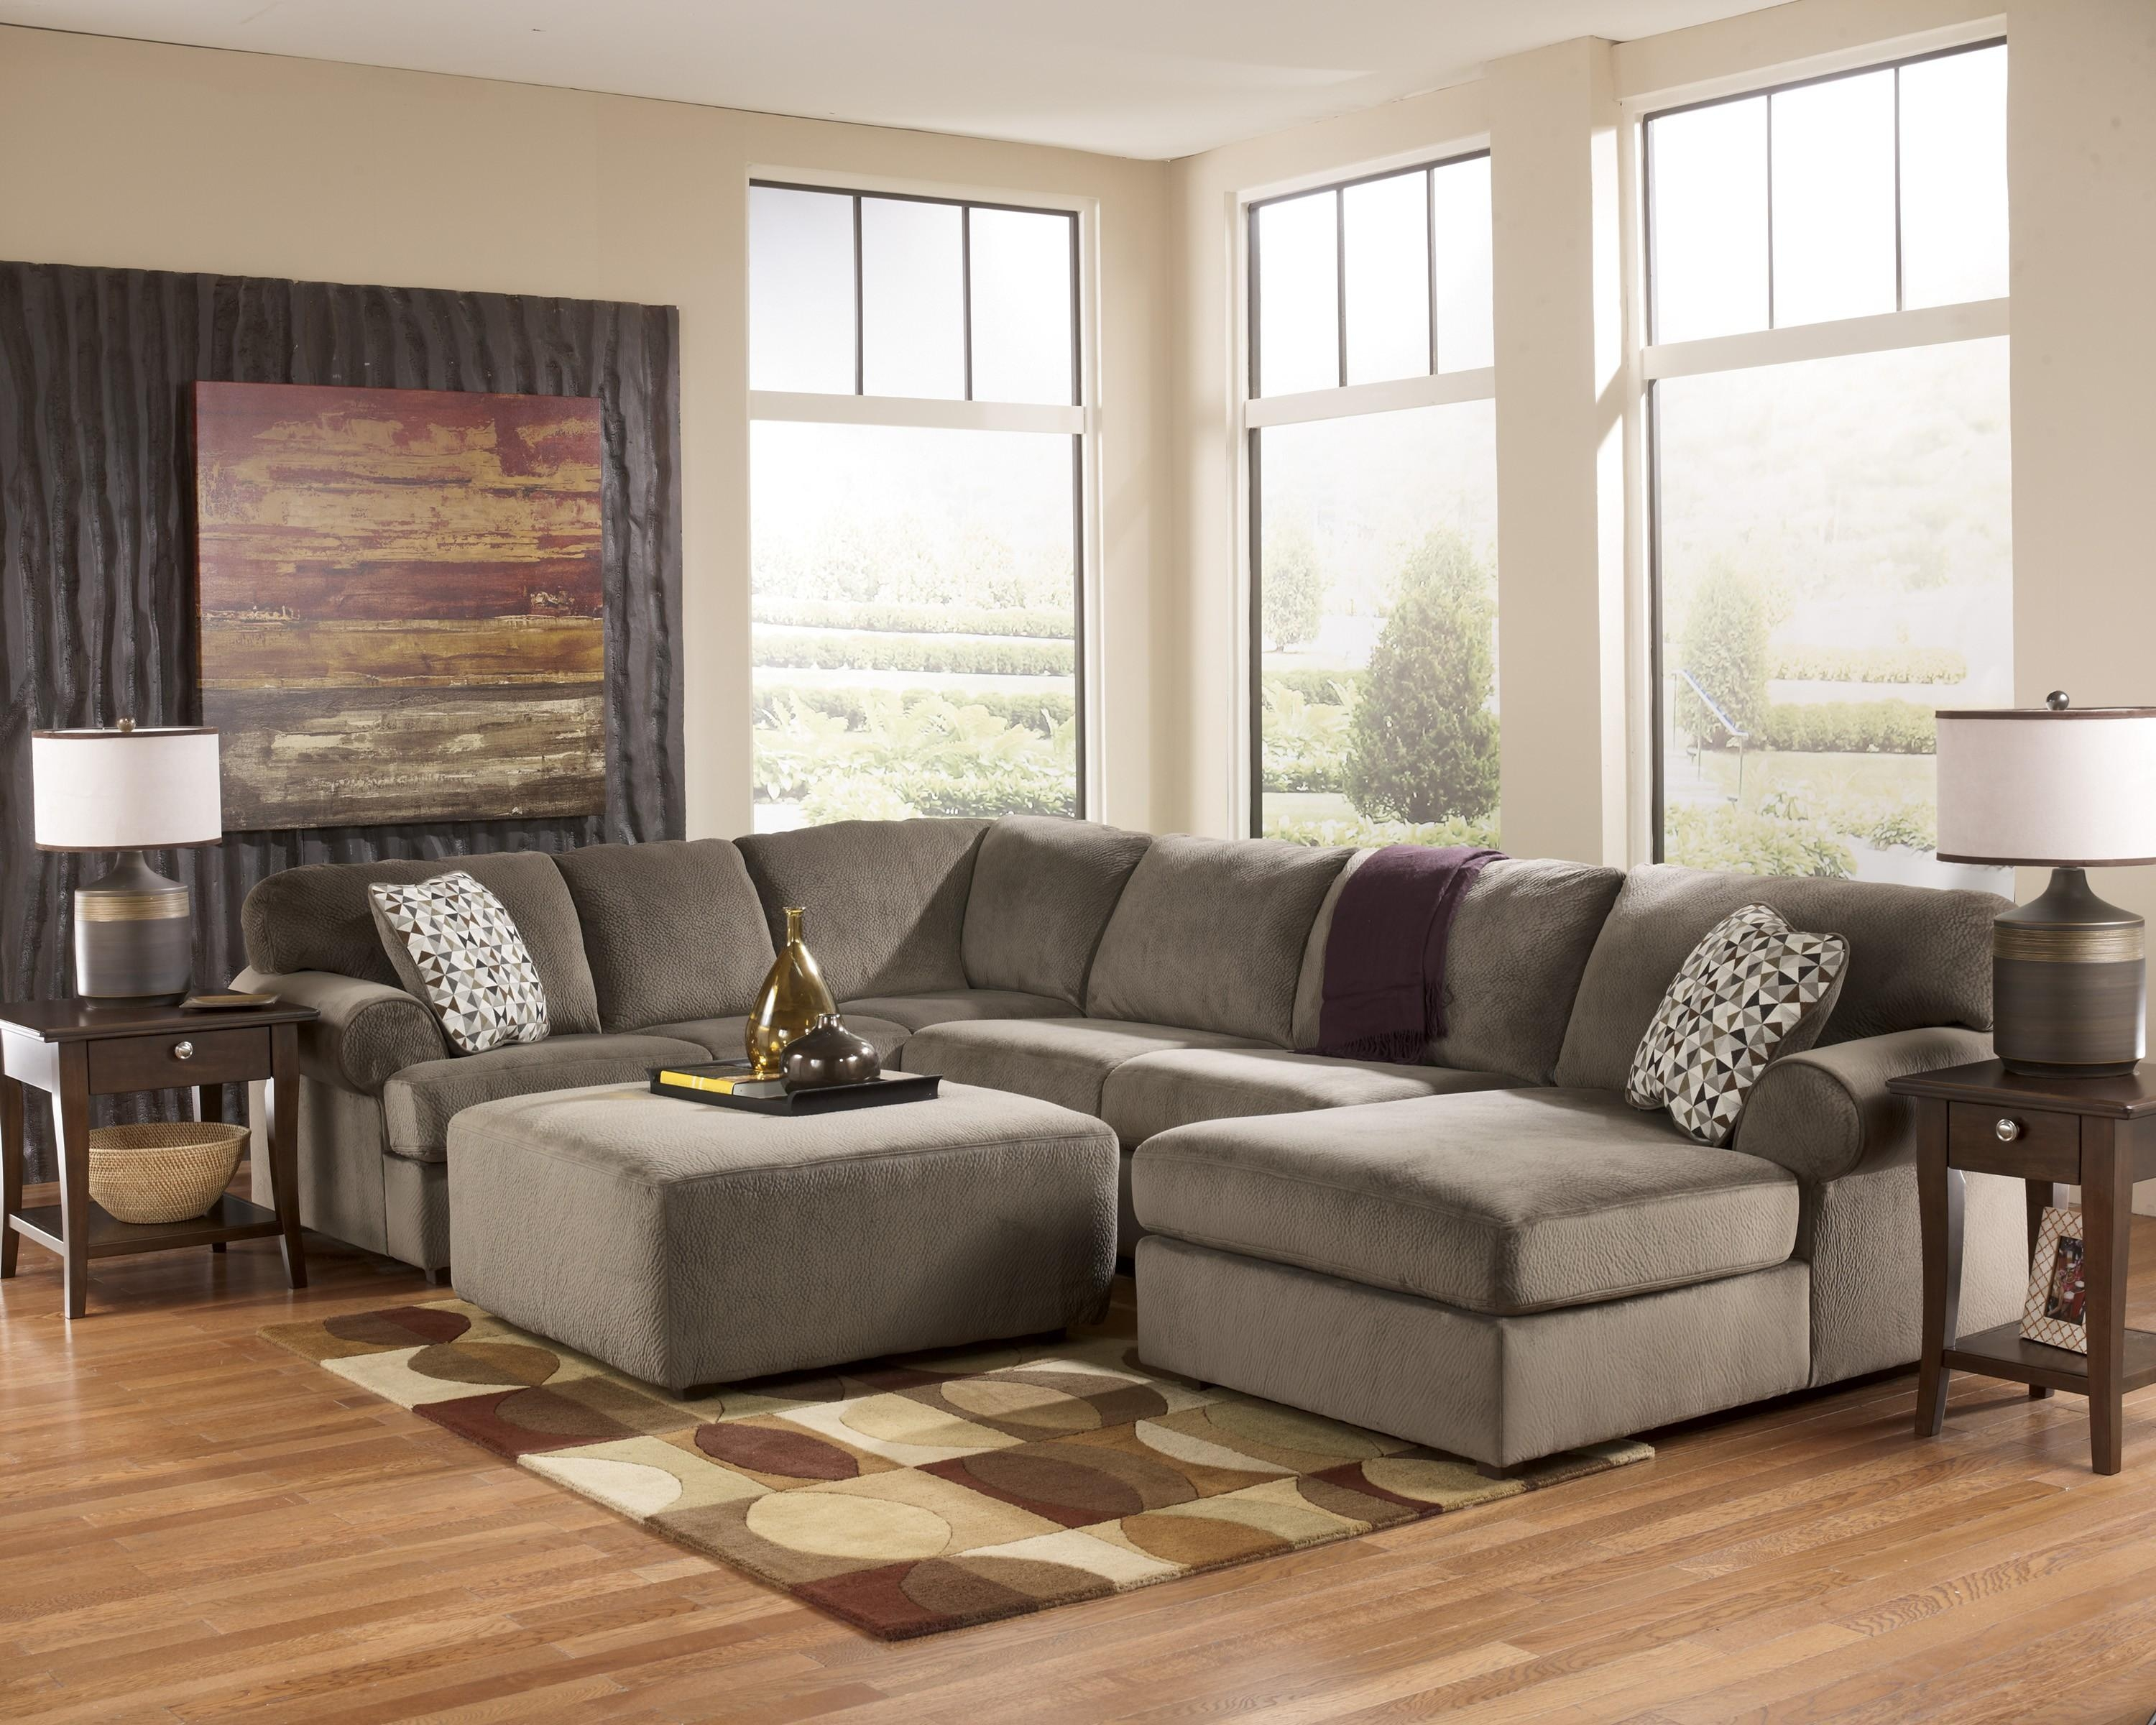 Interior: Luxury Oversized Sectional Sofa For Awesome Living Room Within Oversized Sectional (Image 11 of 20)